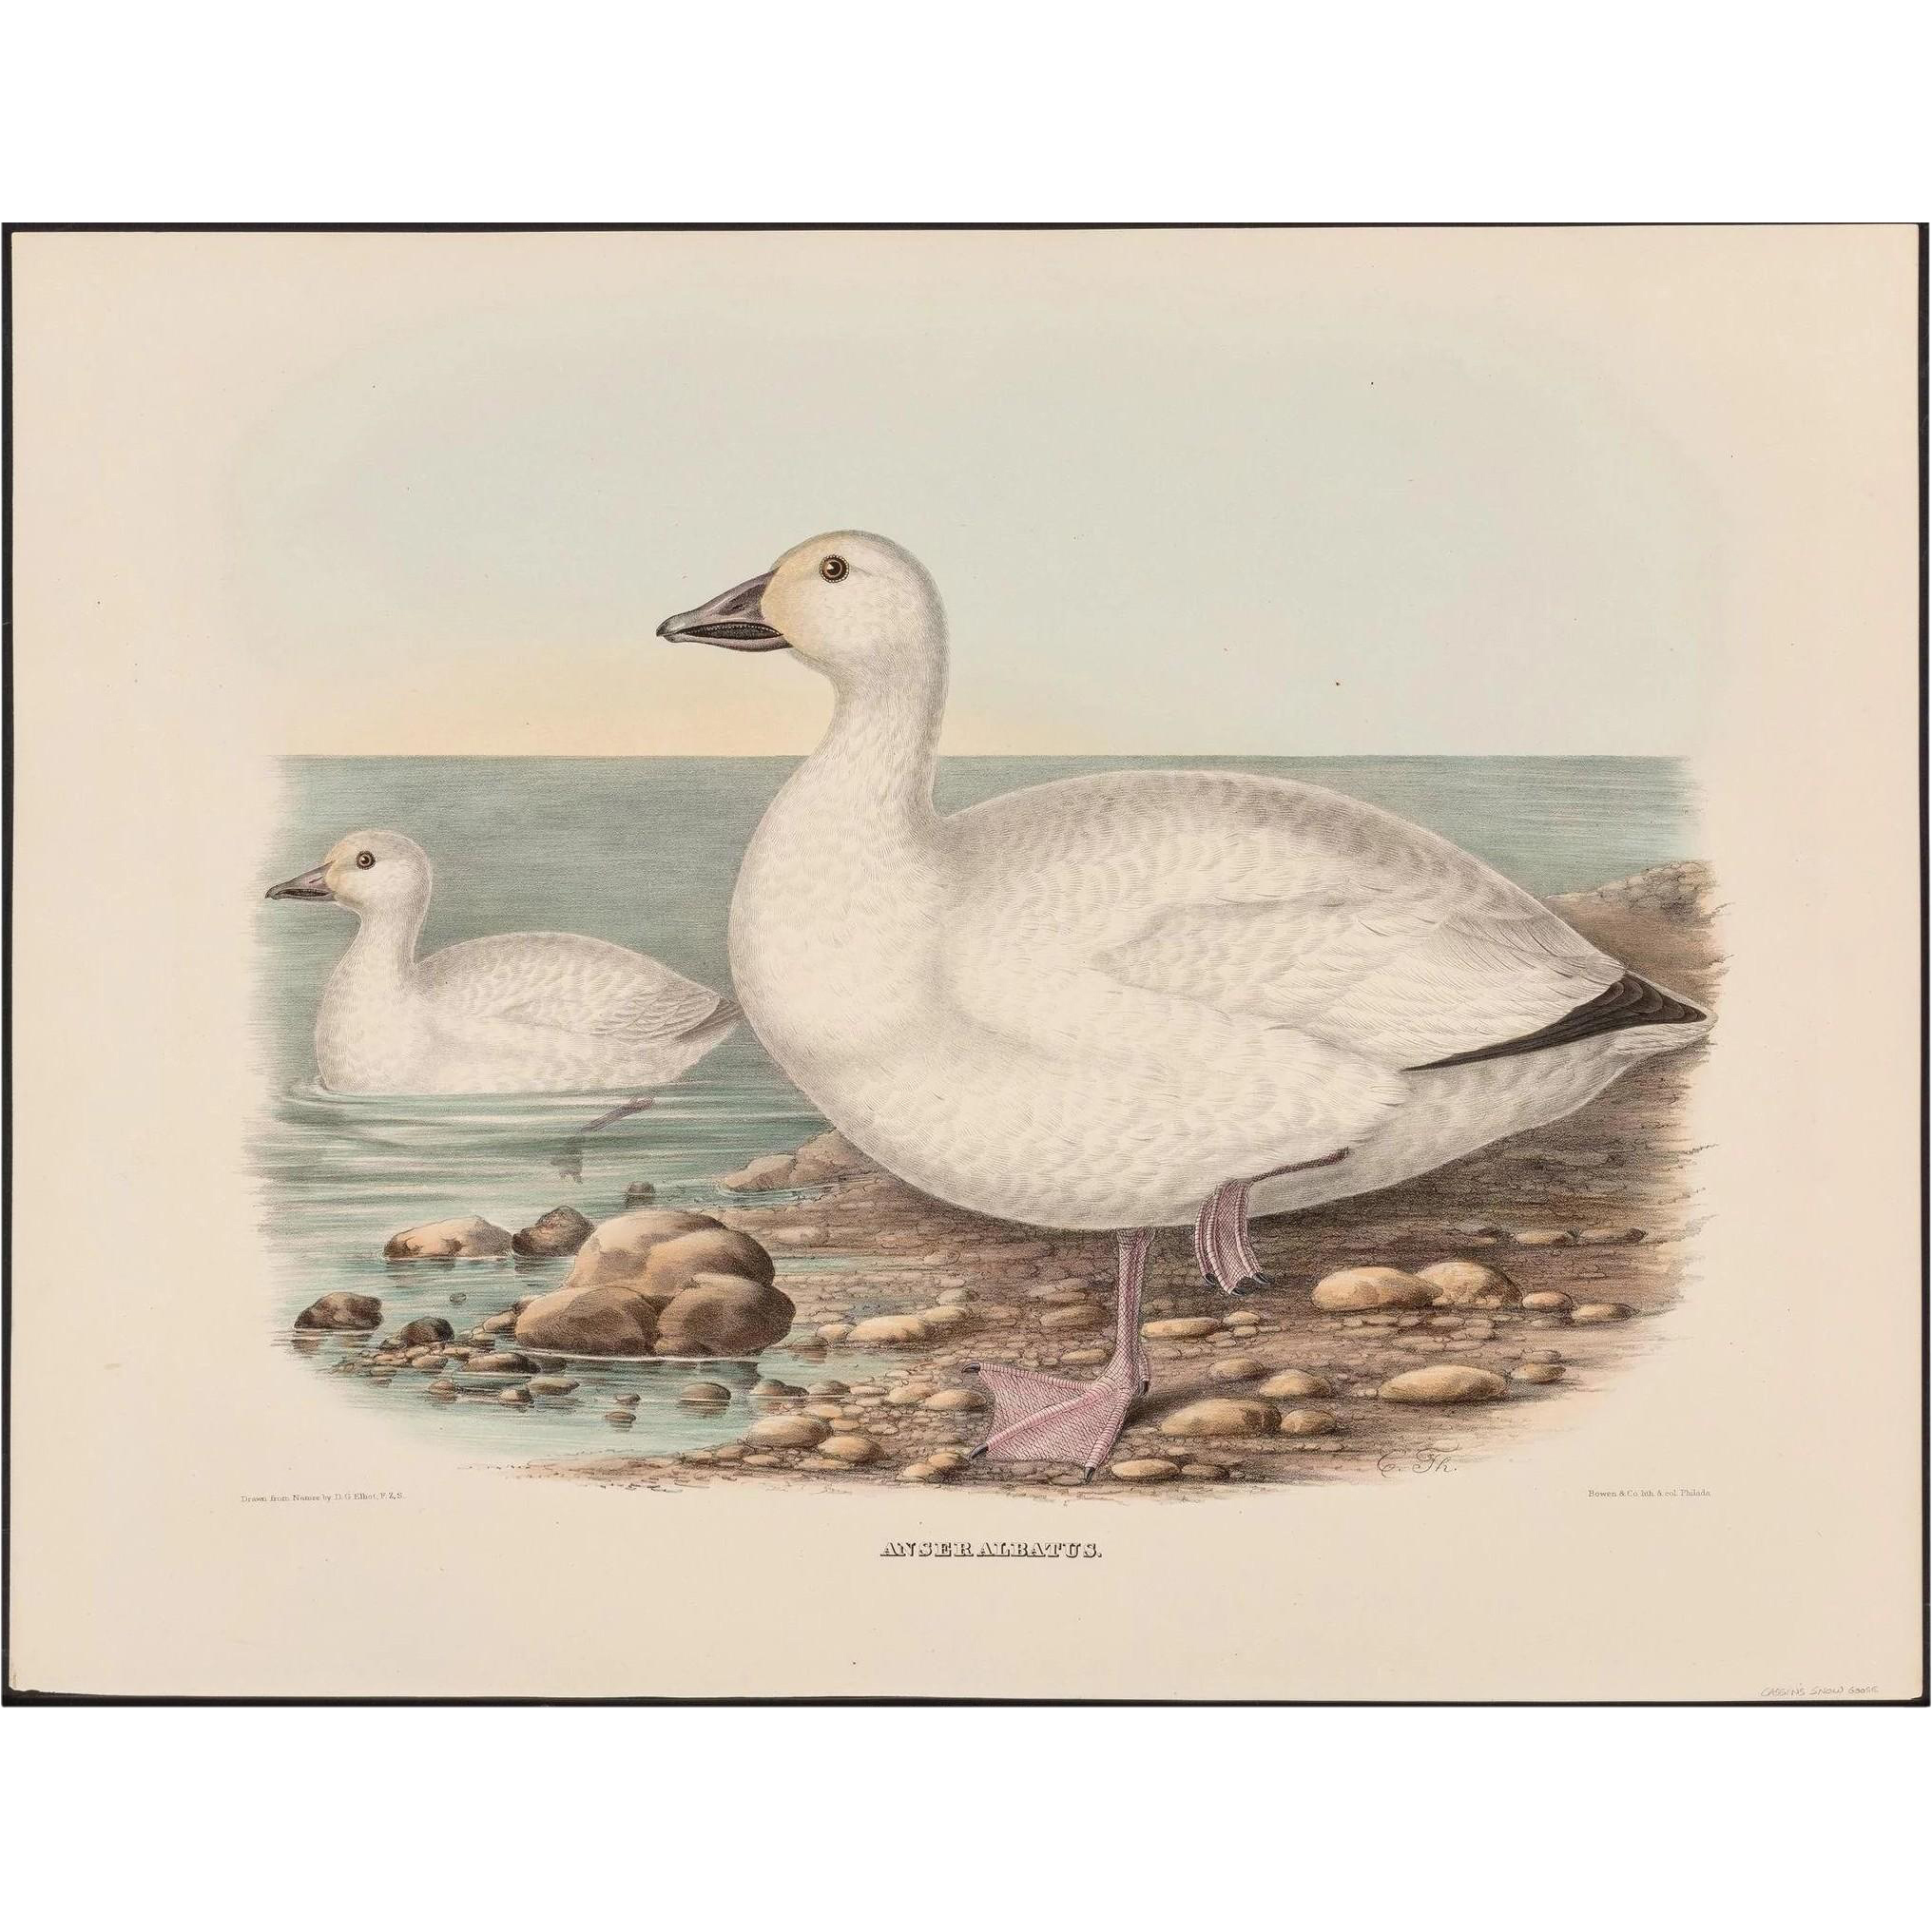 """DANIEL GIRARD ELLIOT (American, 1830-1907) - Antique Hand-Colored Lithograph """"Anser Albatus"""" from The New and Heretofore Unfigured Species of the Birds of North America Circa 1869"""